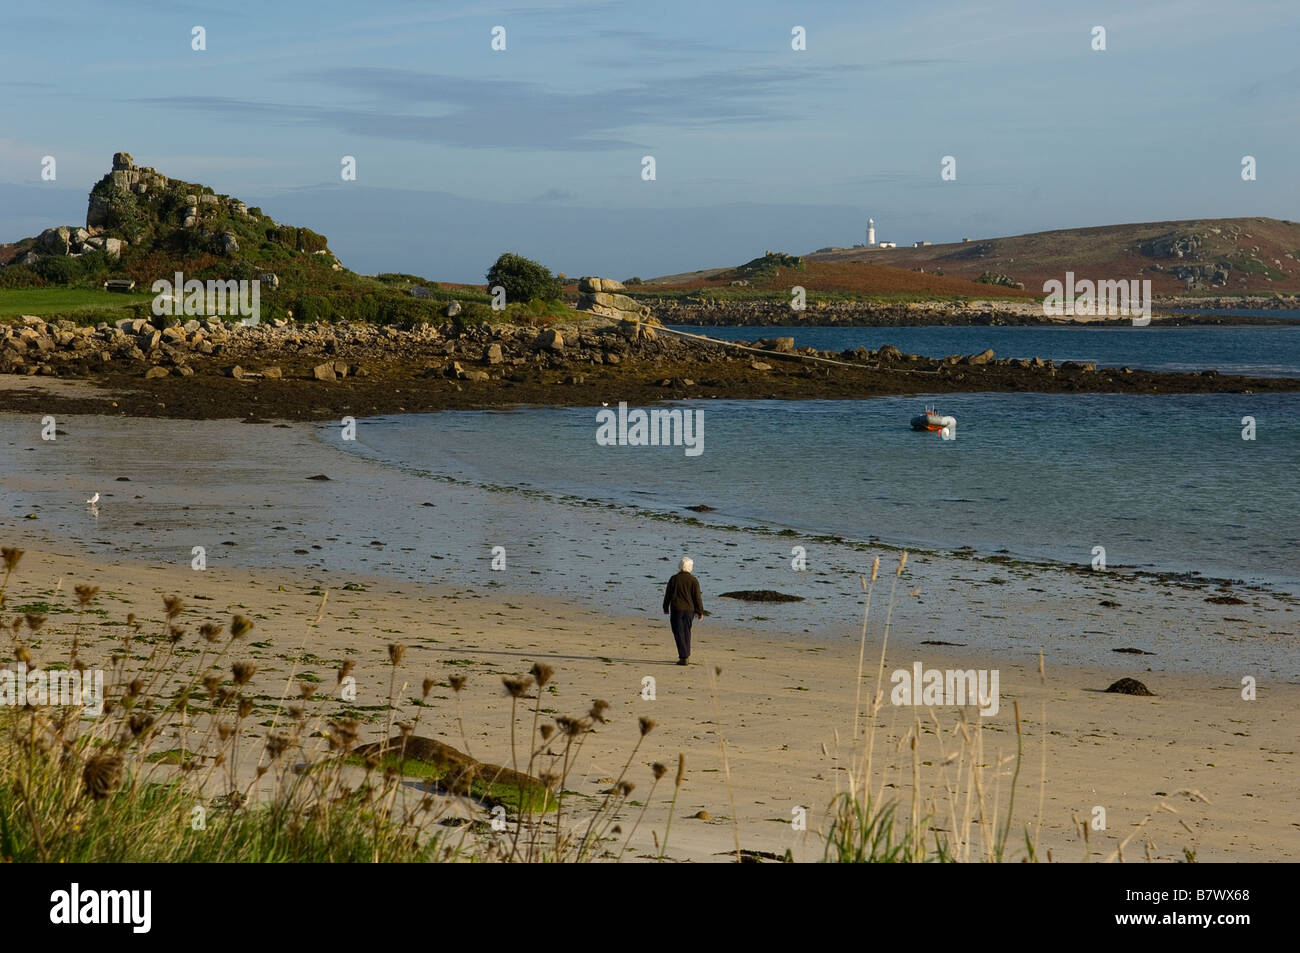 A woman walks along the empty beach at Old Grimsby. Tresco. Isles of Scilly. Cornwall. England. UK - Stock Image